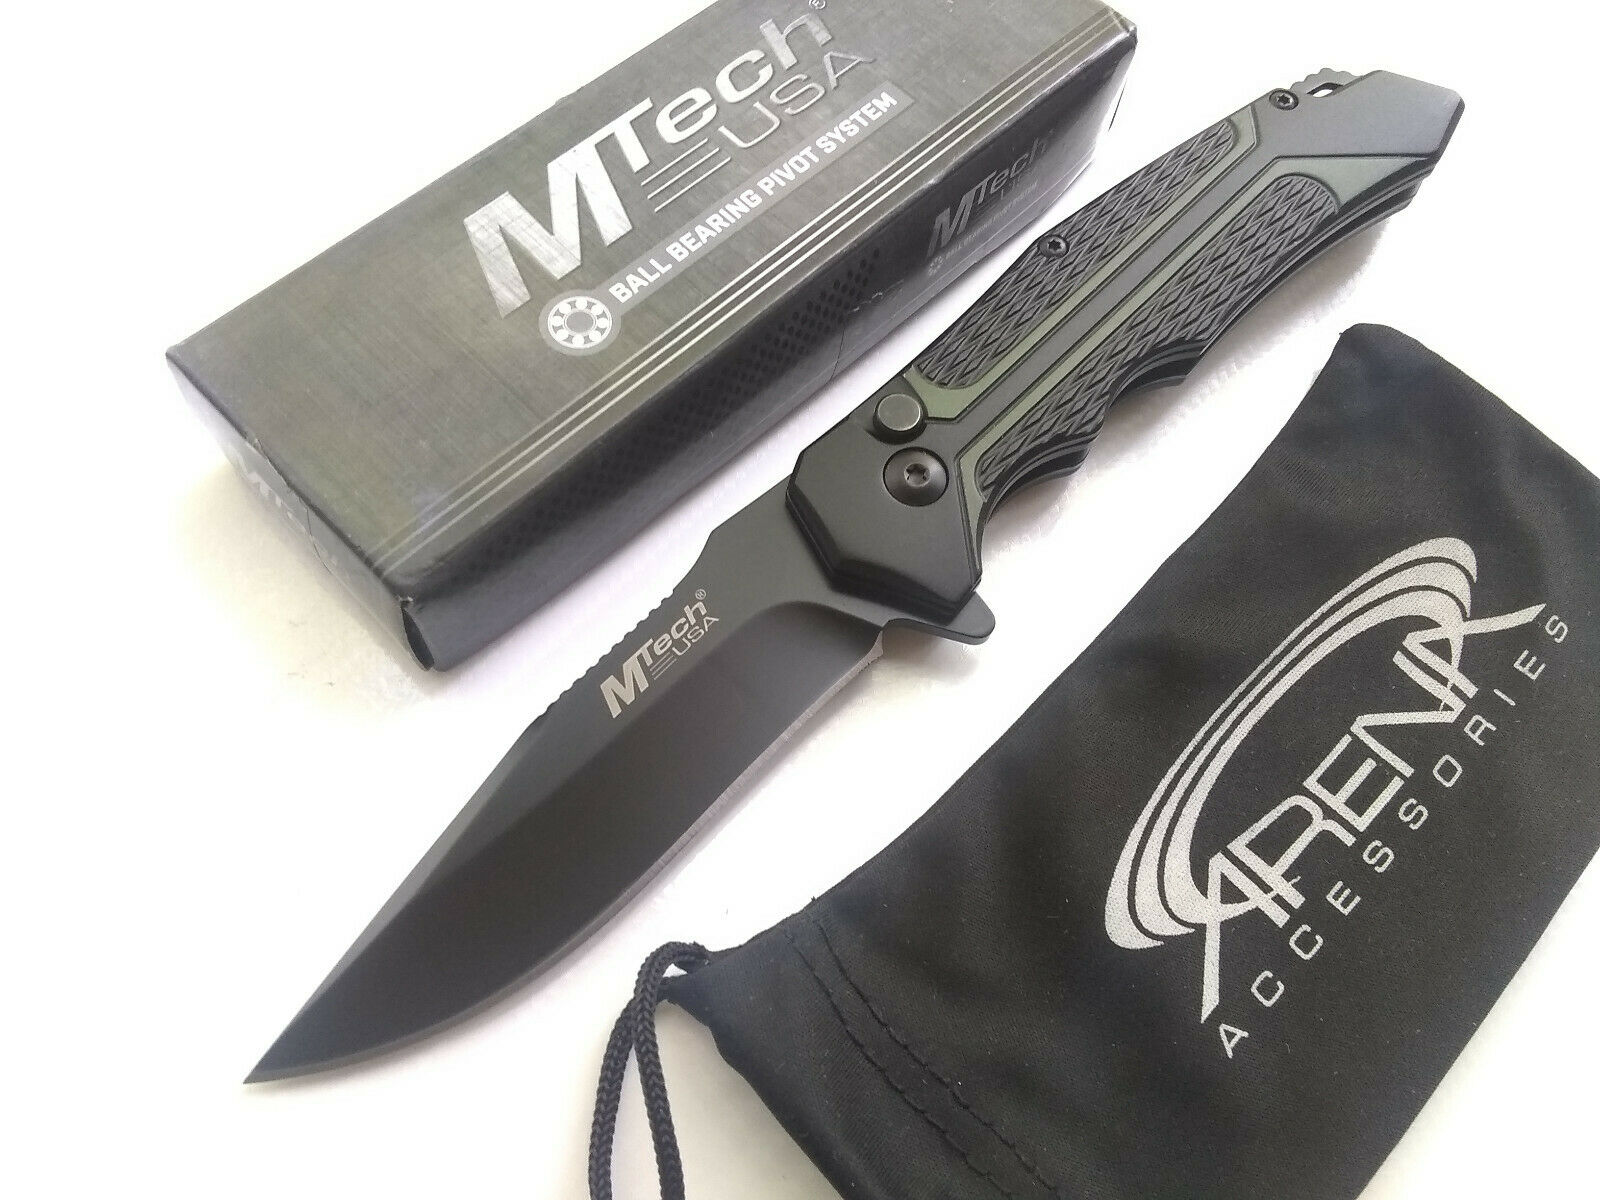 MTech Green Manual Button Lock Pocket Knife Fine Blade Anodized Aluminum Handle EDC